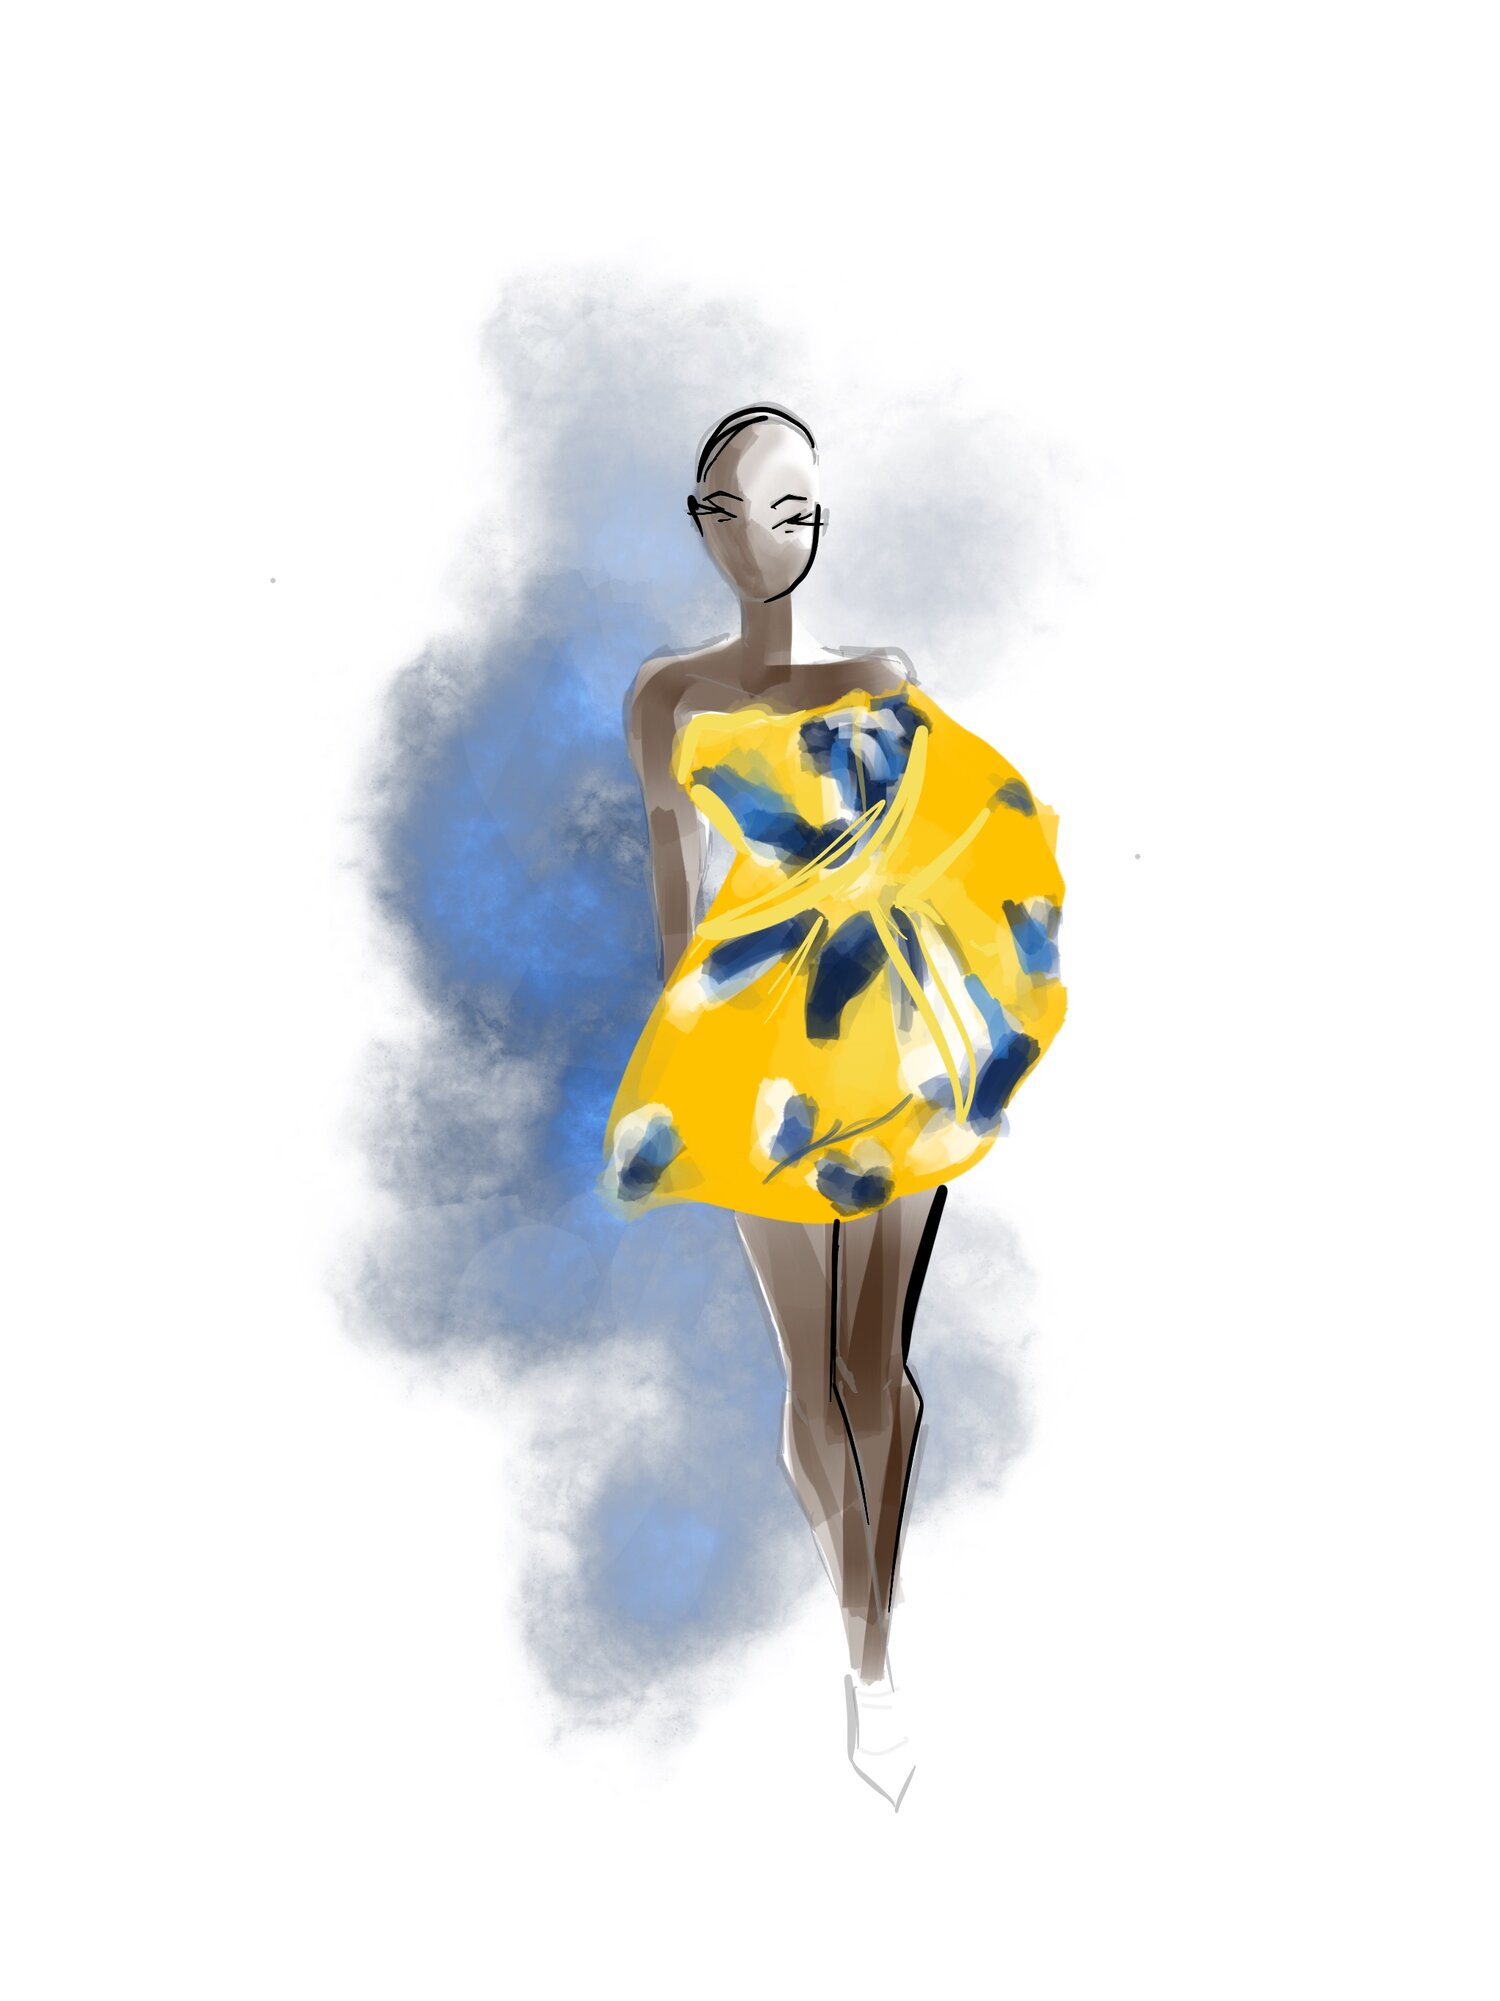 carolina-herrera-02-nyfw-fashion-illustration-by-stephanie-anne.jpg